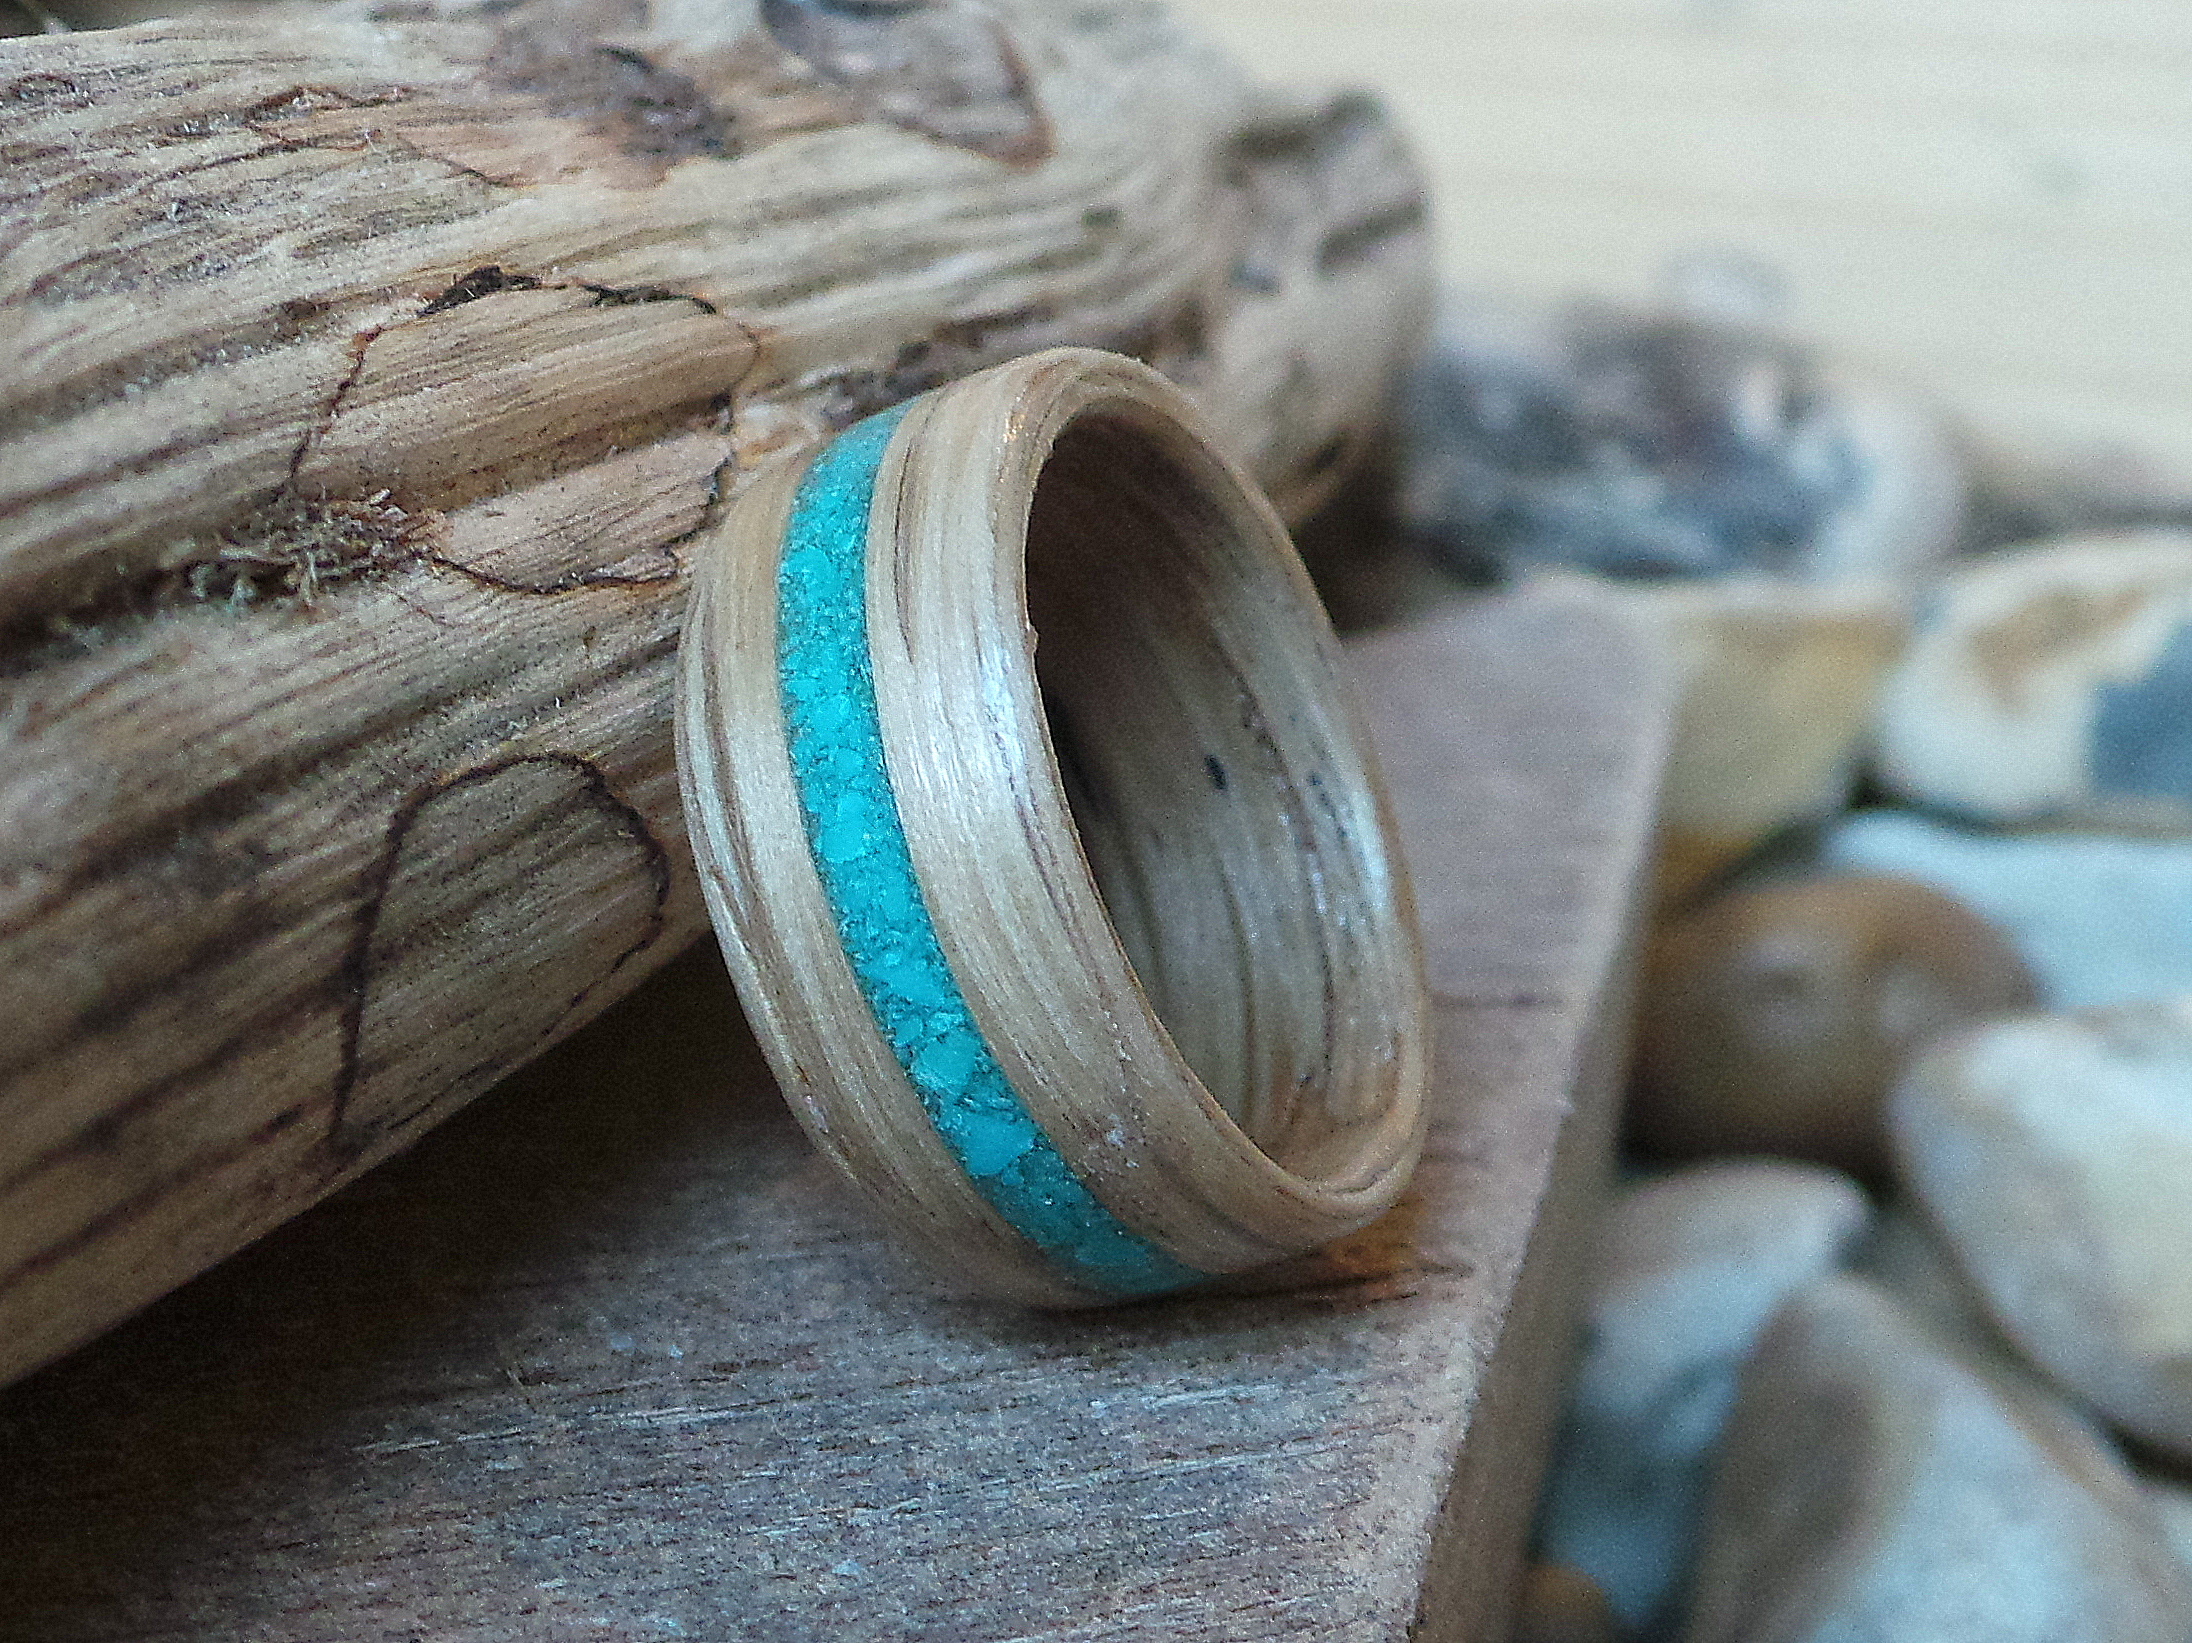 wedding oak from bands new mossy groove blogs our silicone obsession rings